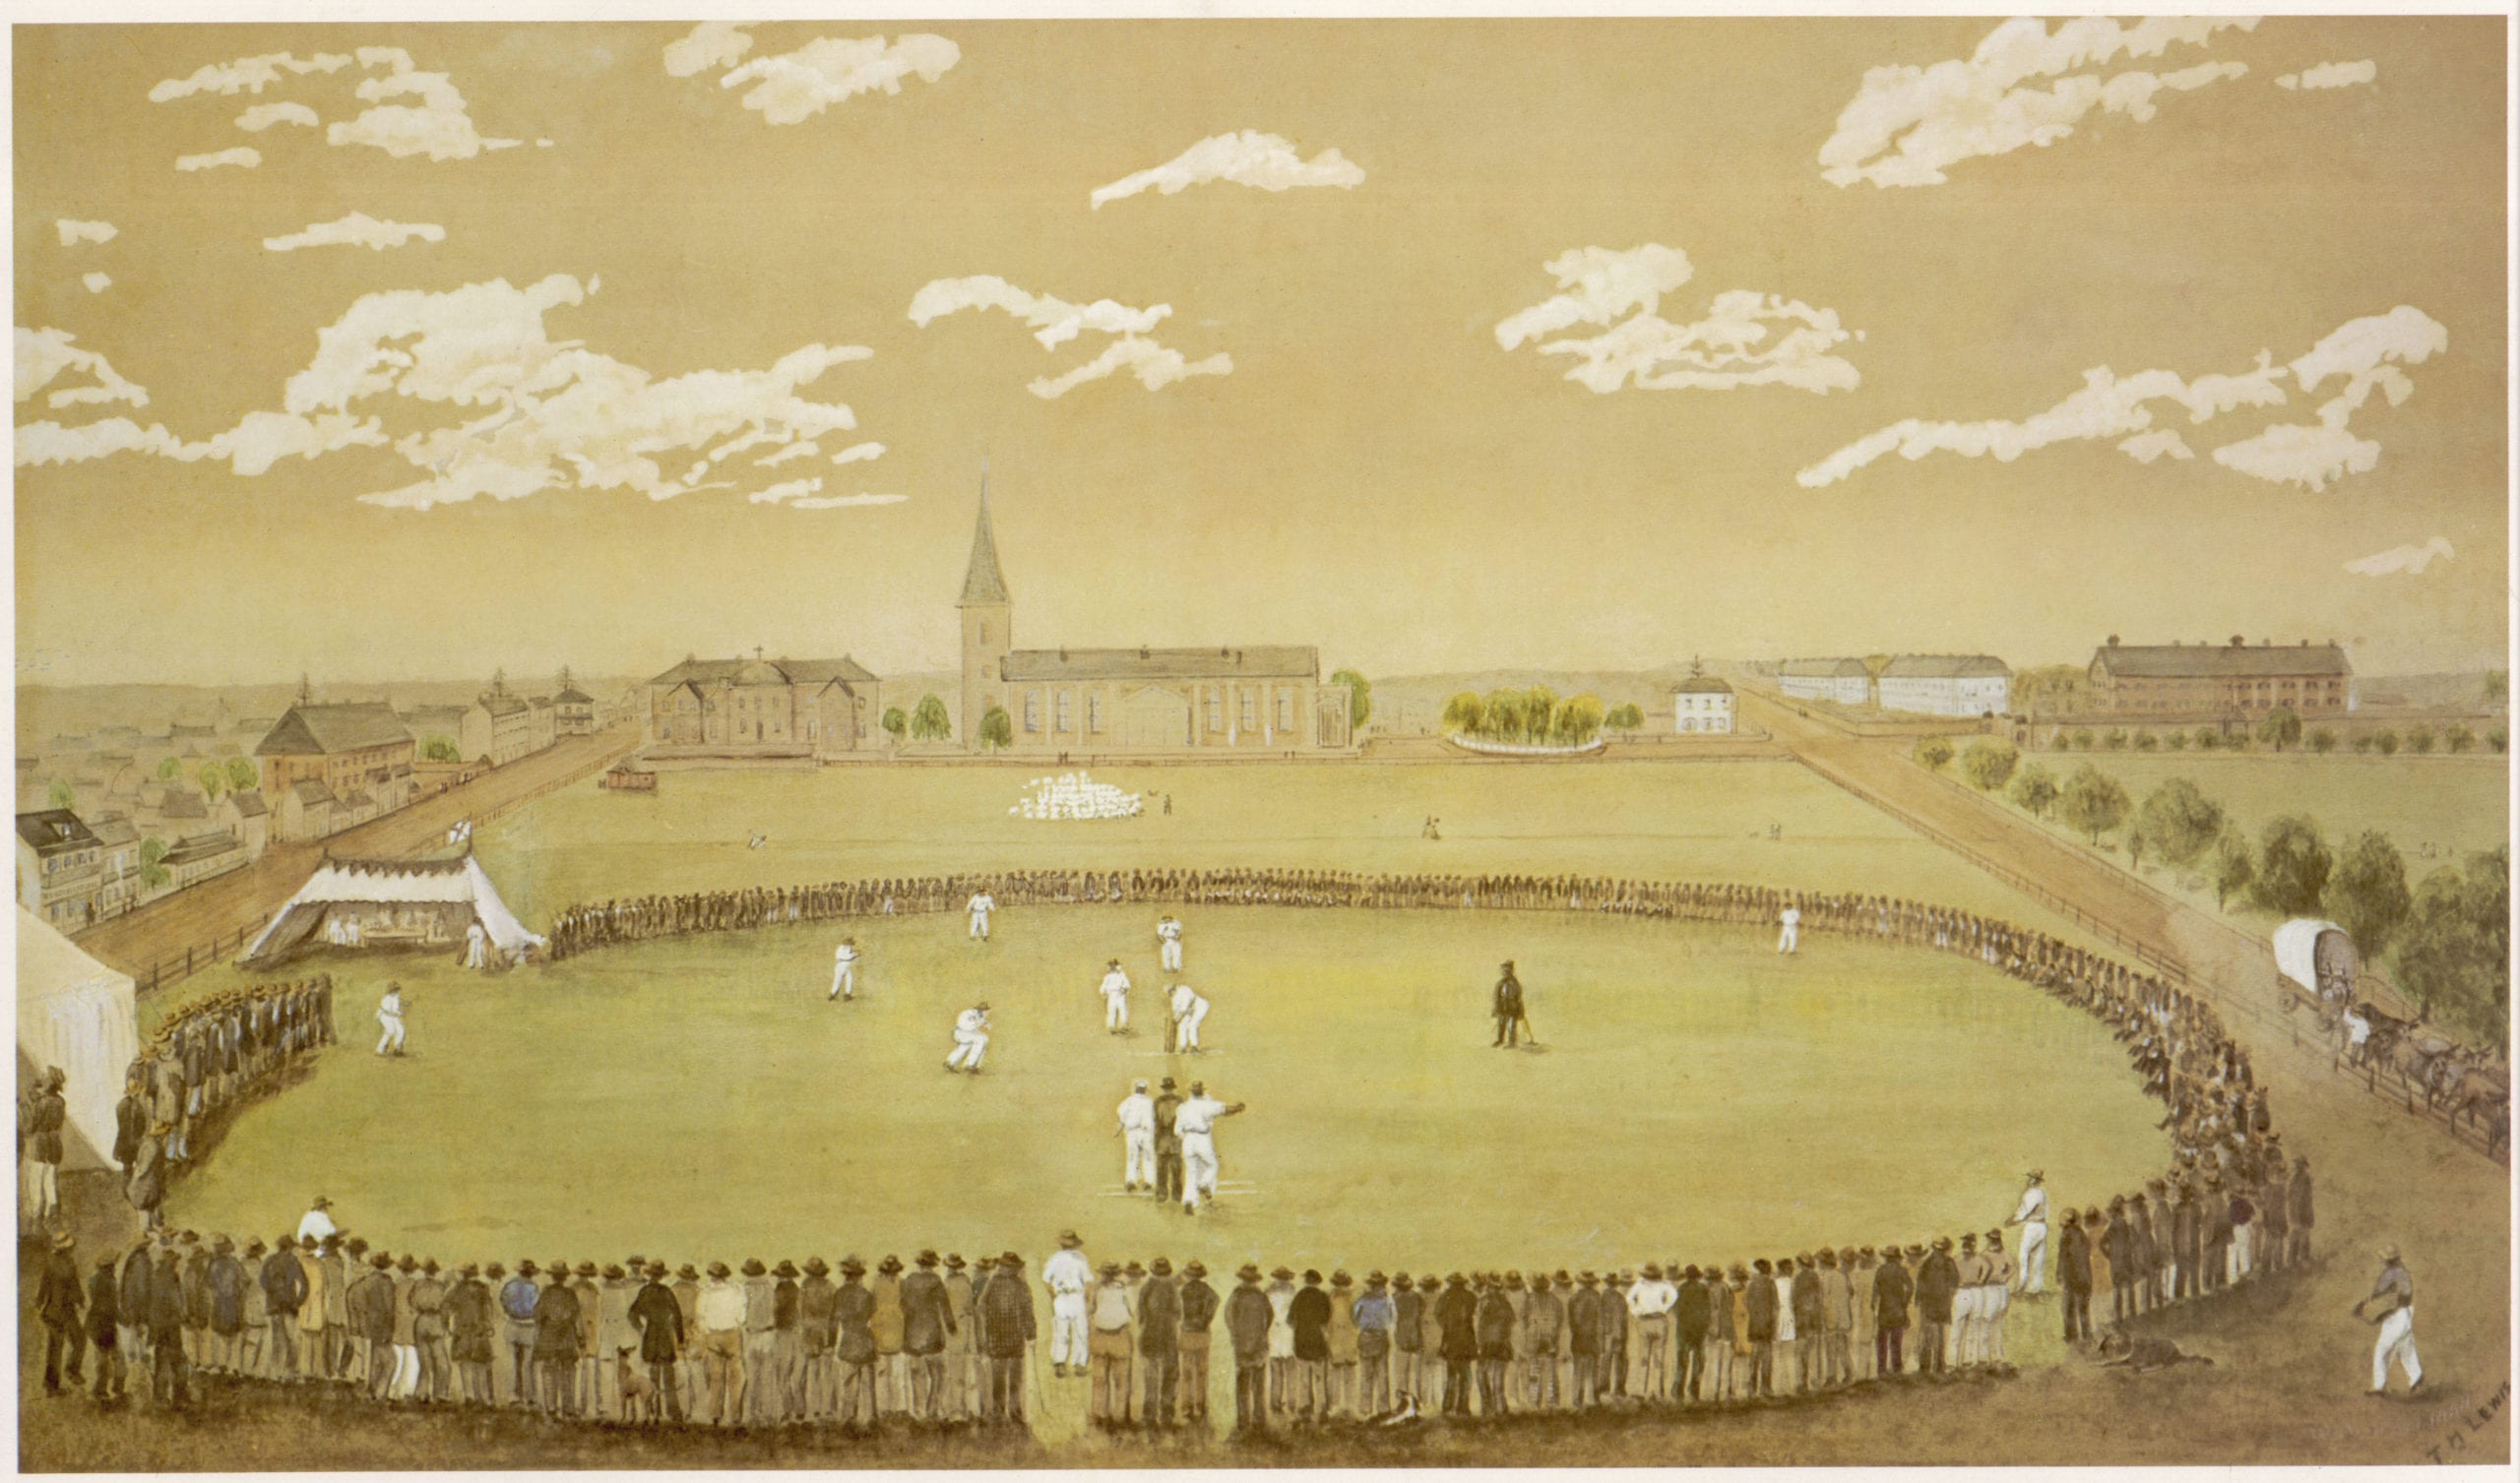 Cricket in Sydney, Australia circa 1842